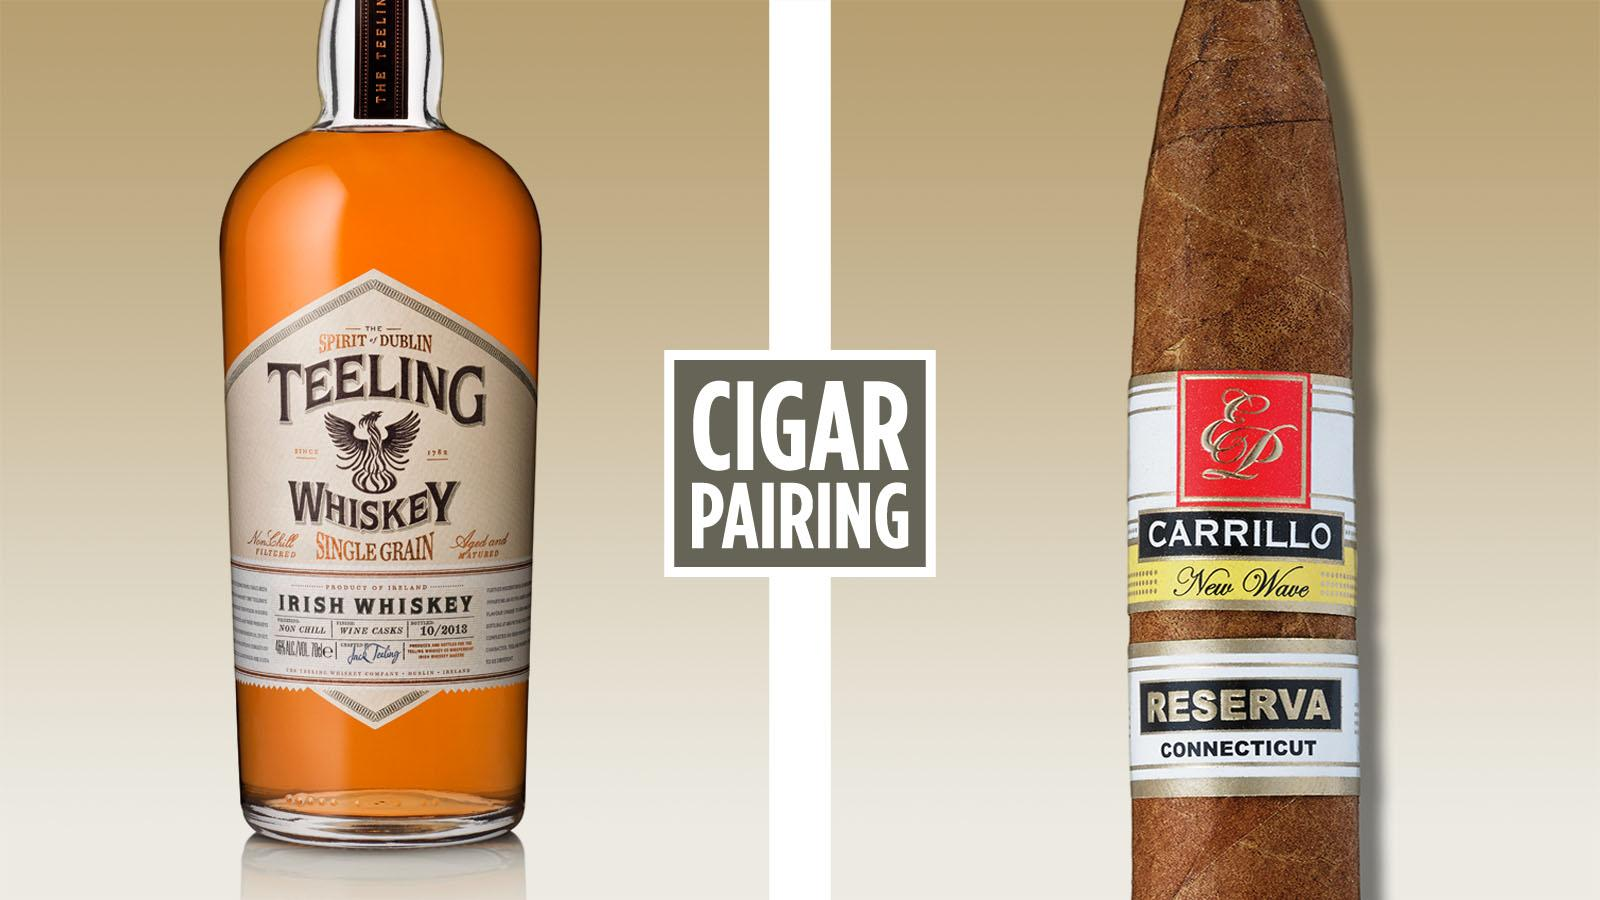 Cigar Pairing: Teeling Irish Whiskey